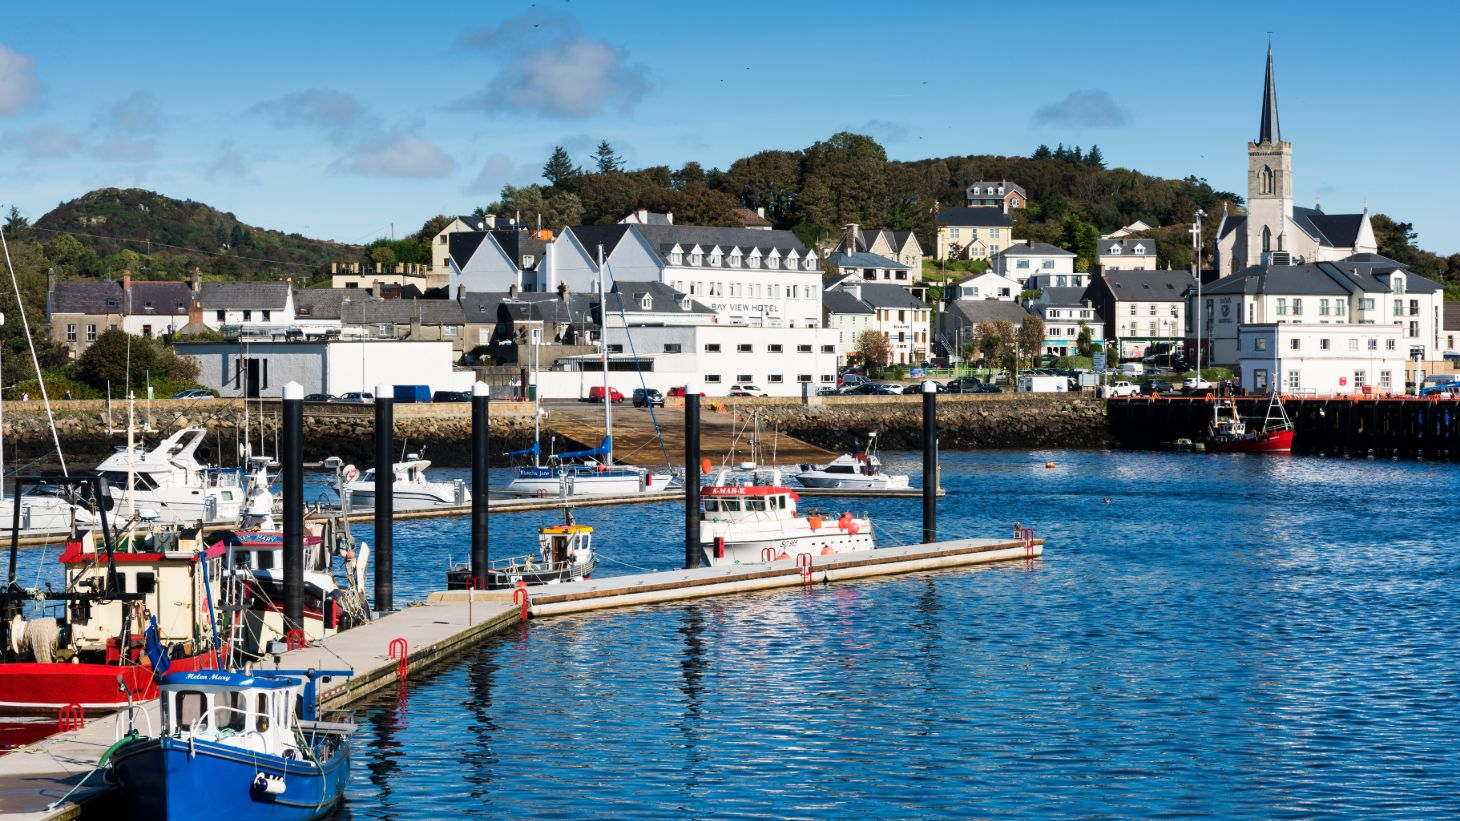 The beautiful harbour in Killybegs.